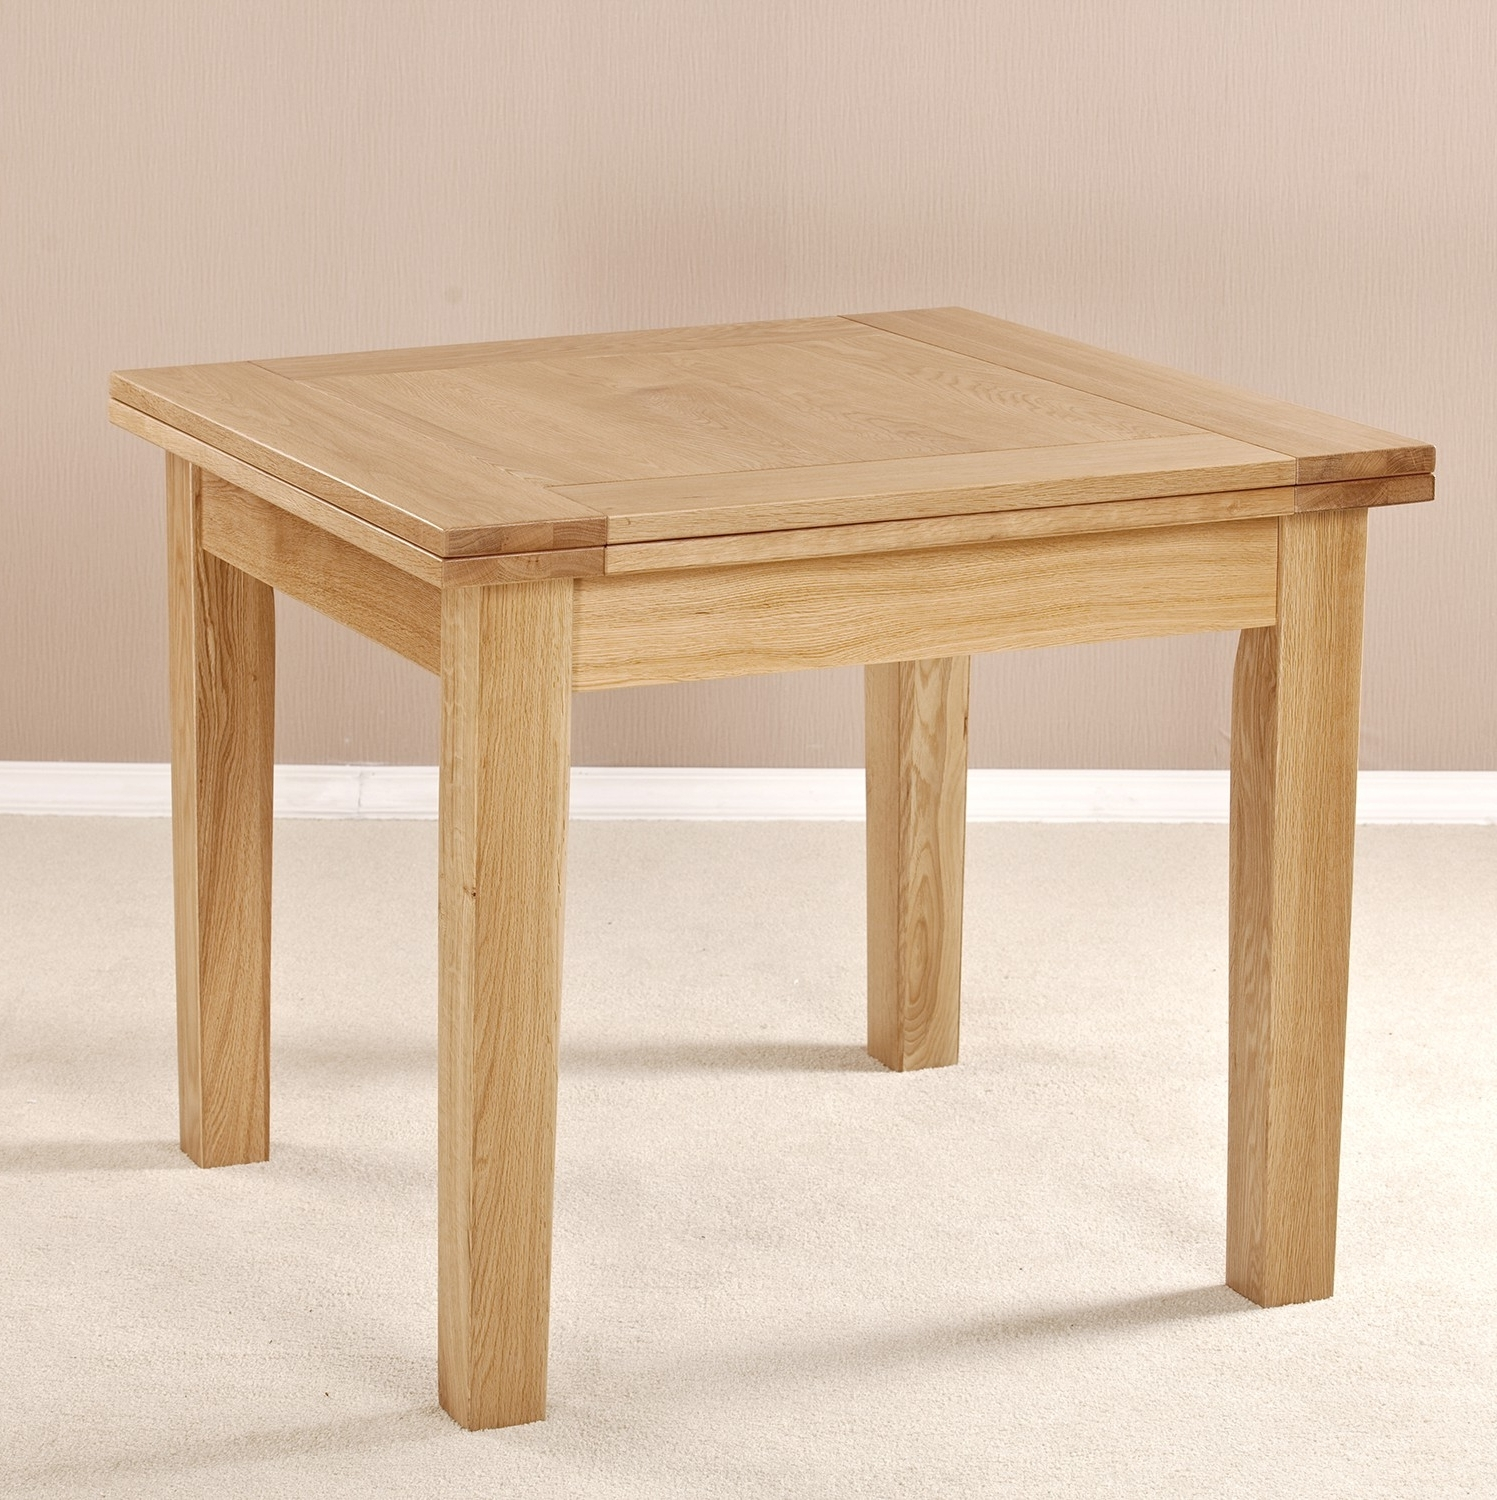 Square Solid Oak Wood Flip Top Extendable Dining Table Design With In Well Known Extendable Square Dining Tables (View 20 of 25)